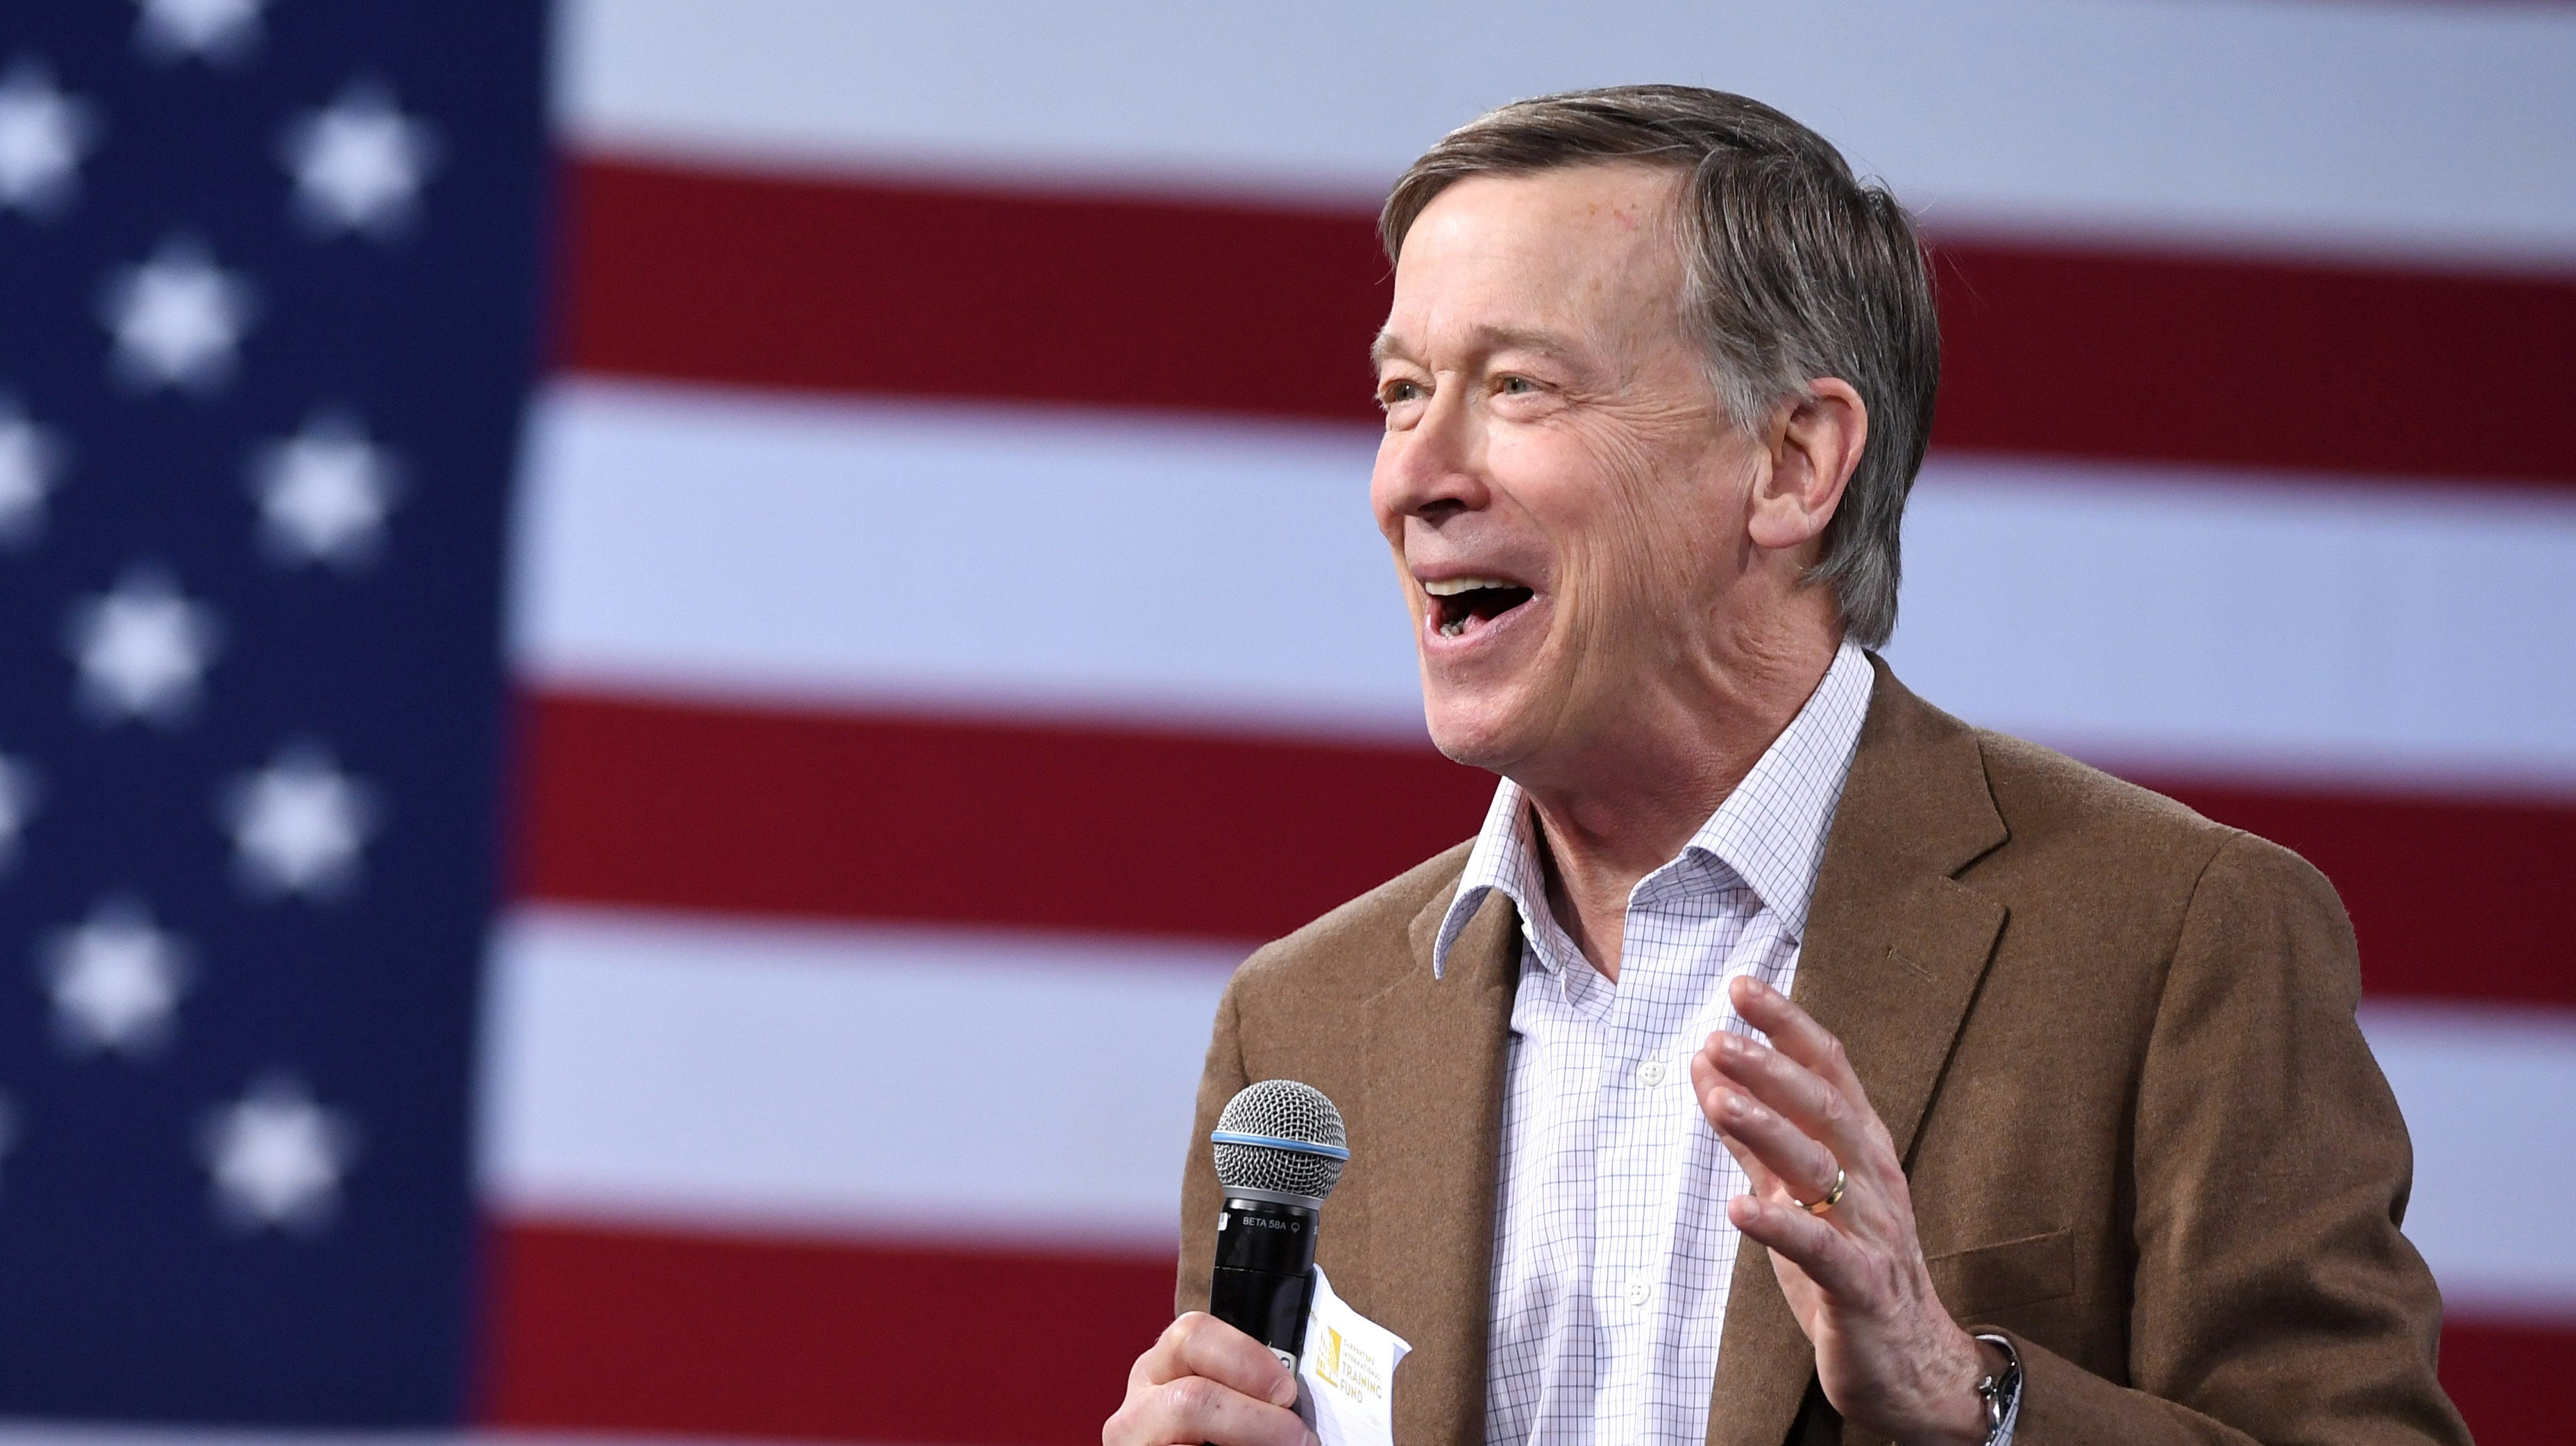 Democratic presidential candidate former Colorado Gov. John Hickenlooper speaks at the National Forum on Wages and Working People: Creating an Economy That Works for All at Enclave on April 27, 2019 in Las Vegas, Nevada.